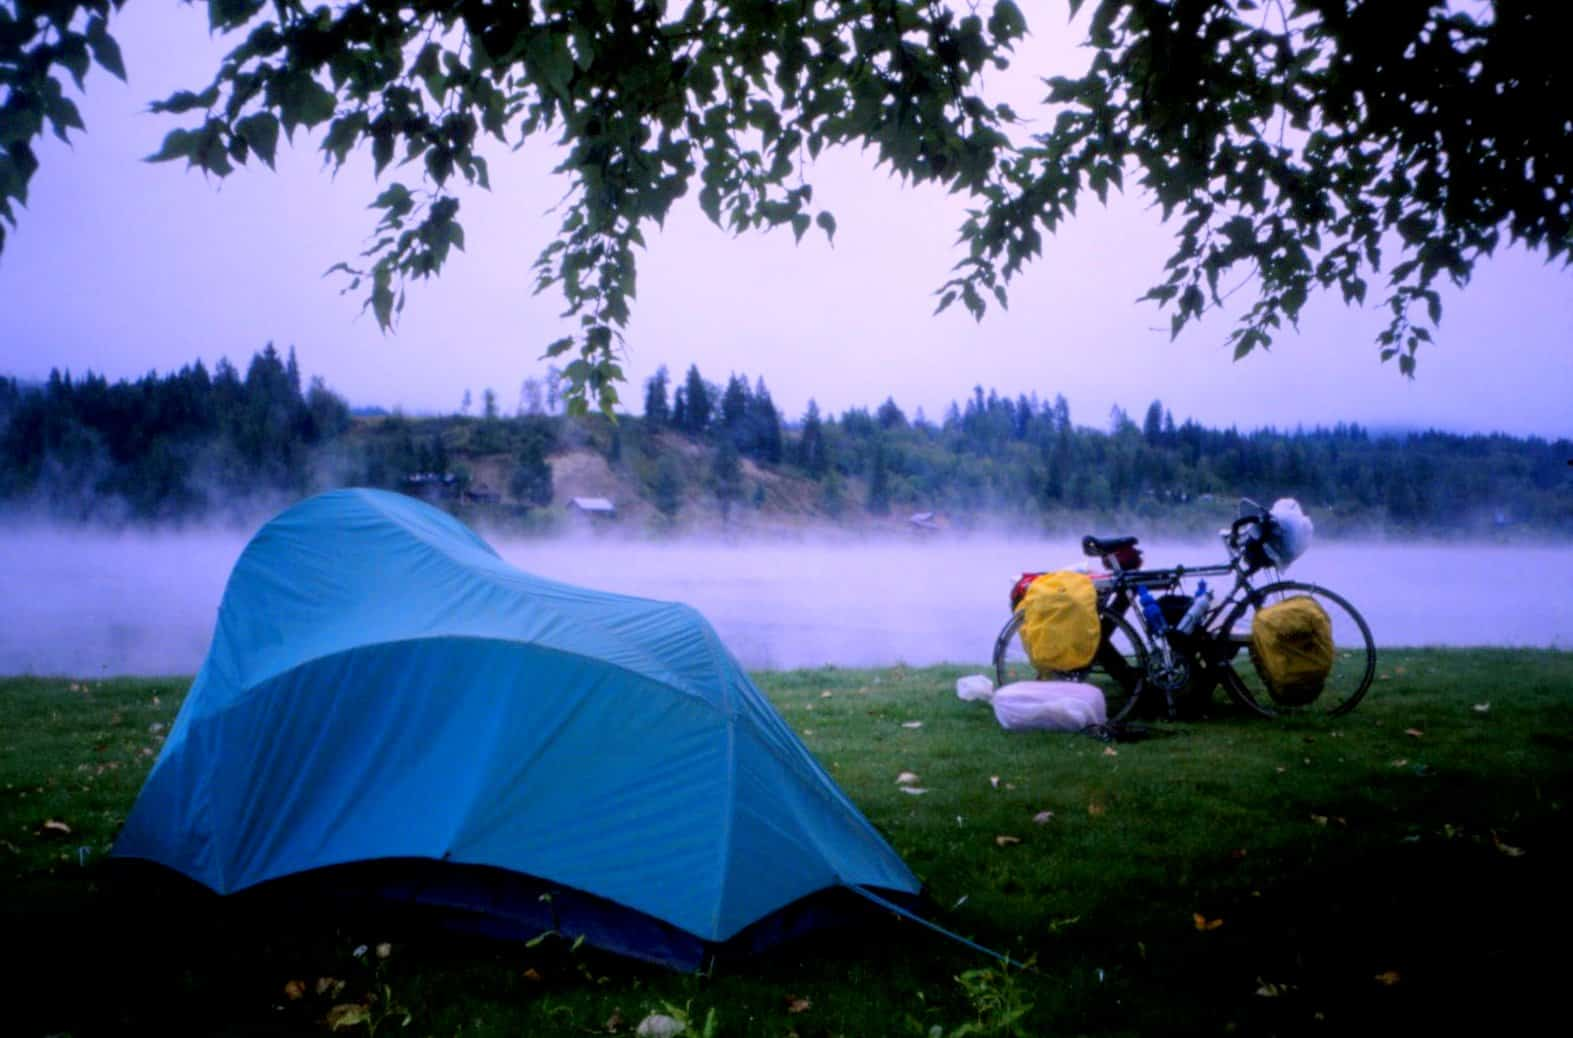 Camp site during a cycling road trip in Washington